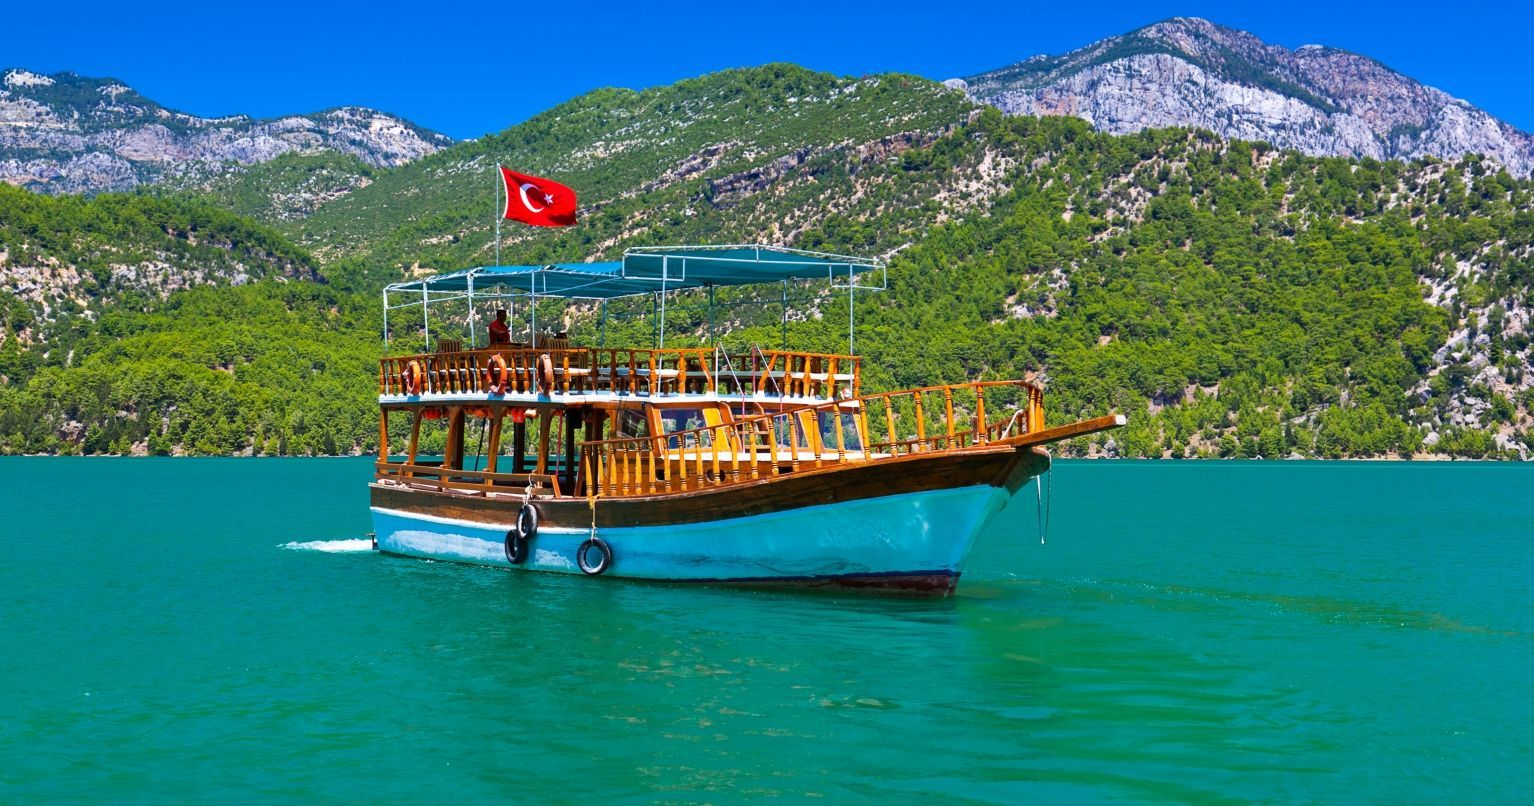 Green Canyon Boat Turkey Tinggly Experience Gifts